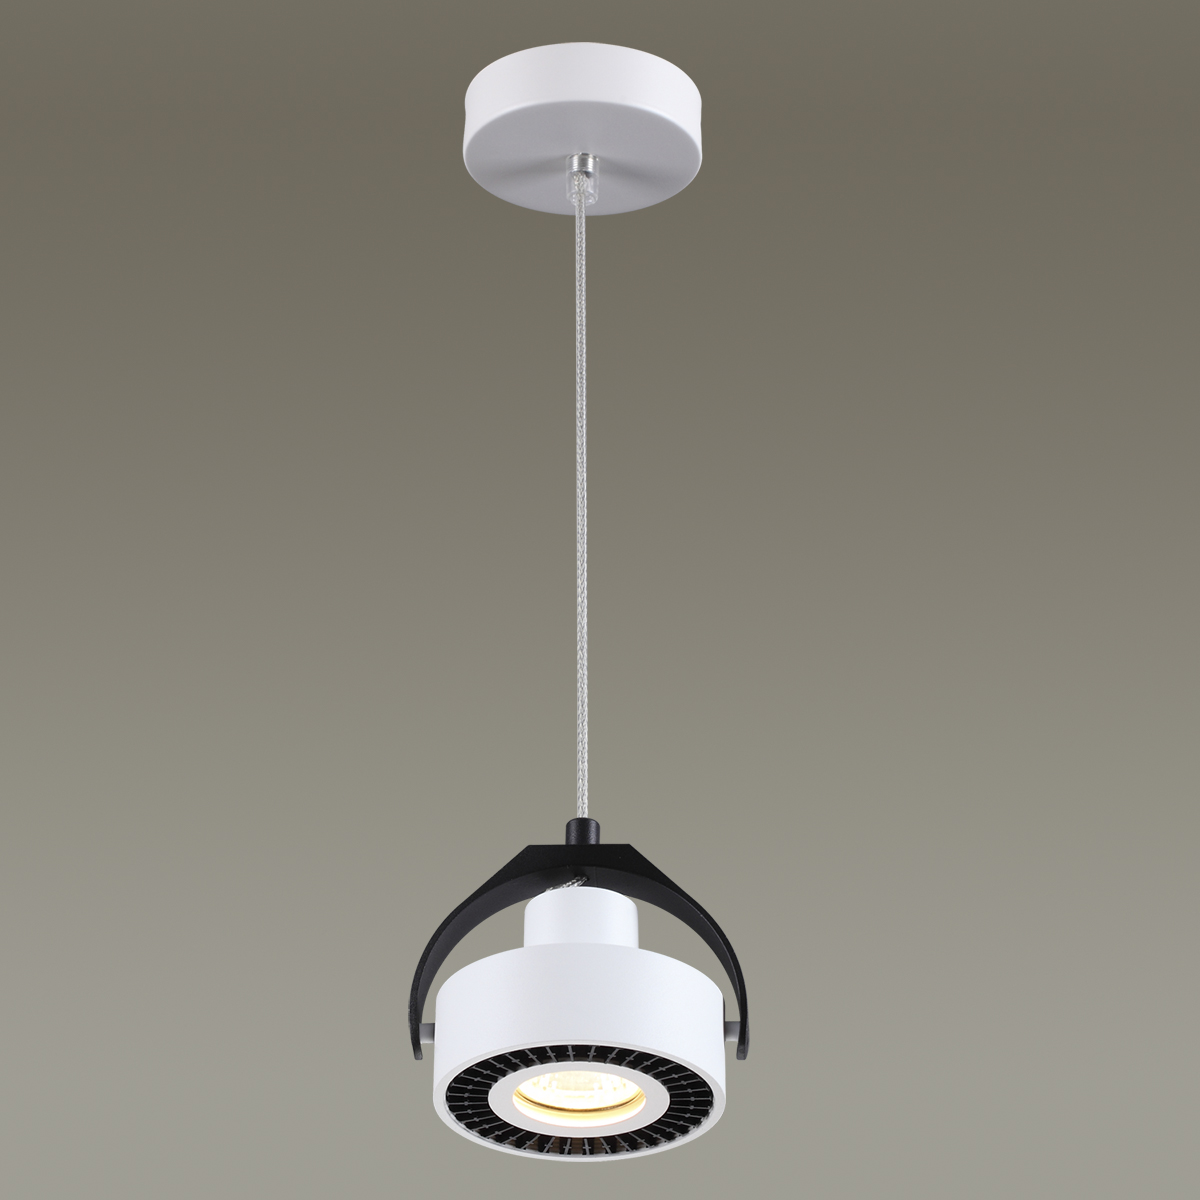 Подвес ODEON LIGHT арт. 3817/1